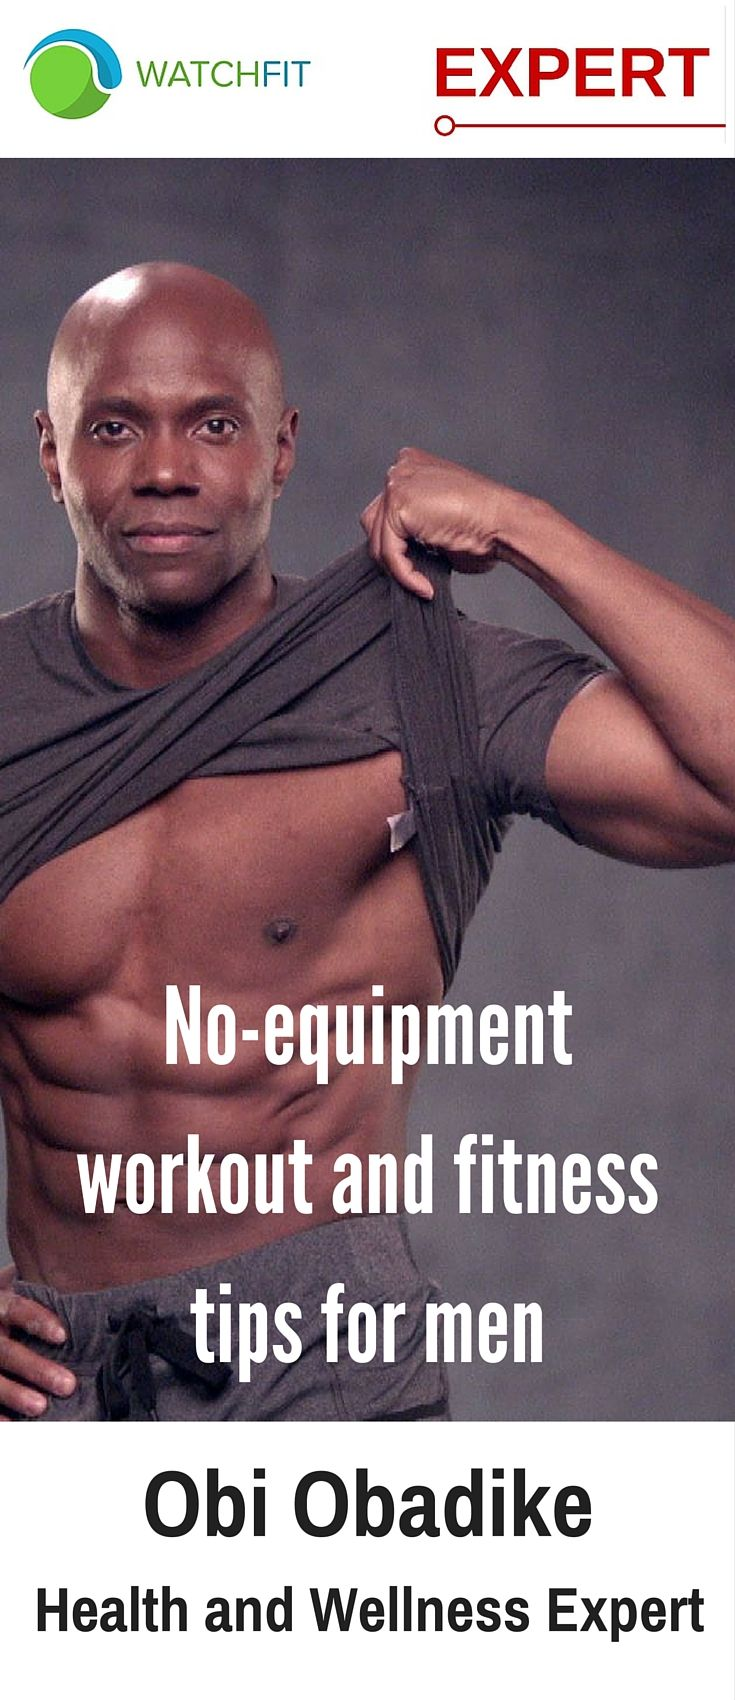 eaecc25966f Obi is recognised as one of the top fitness personalities and health and  wellness experts in the world. He has graced over 35 fitness magazines  covers and ...